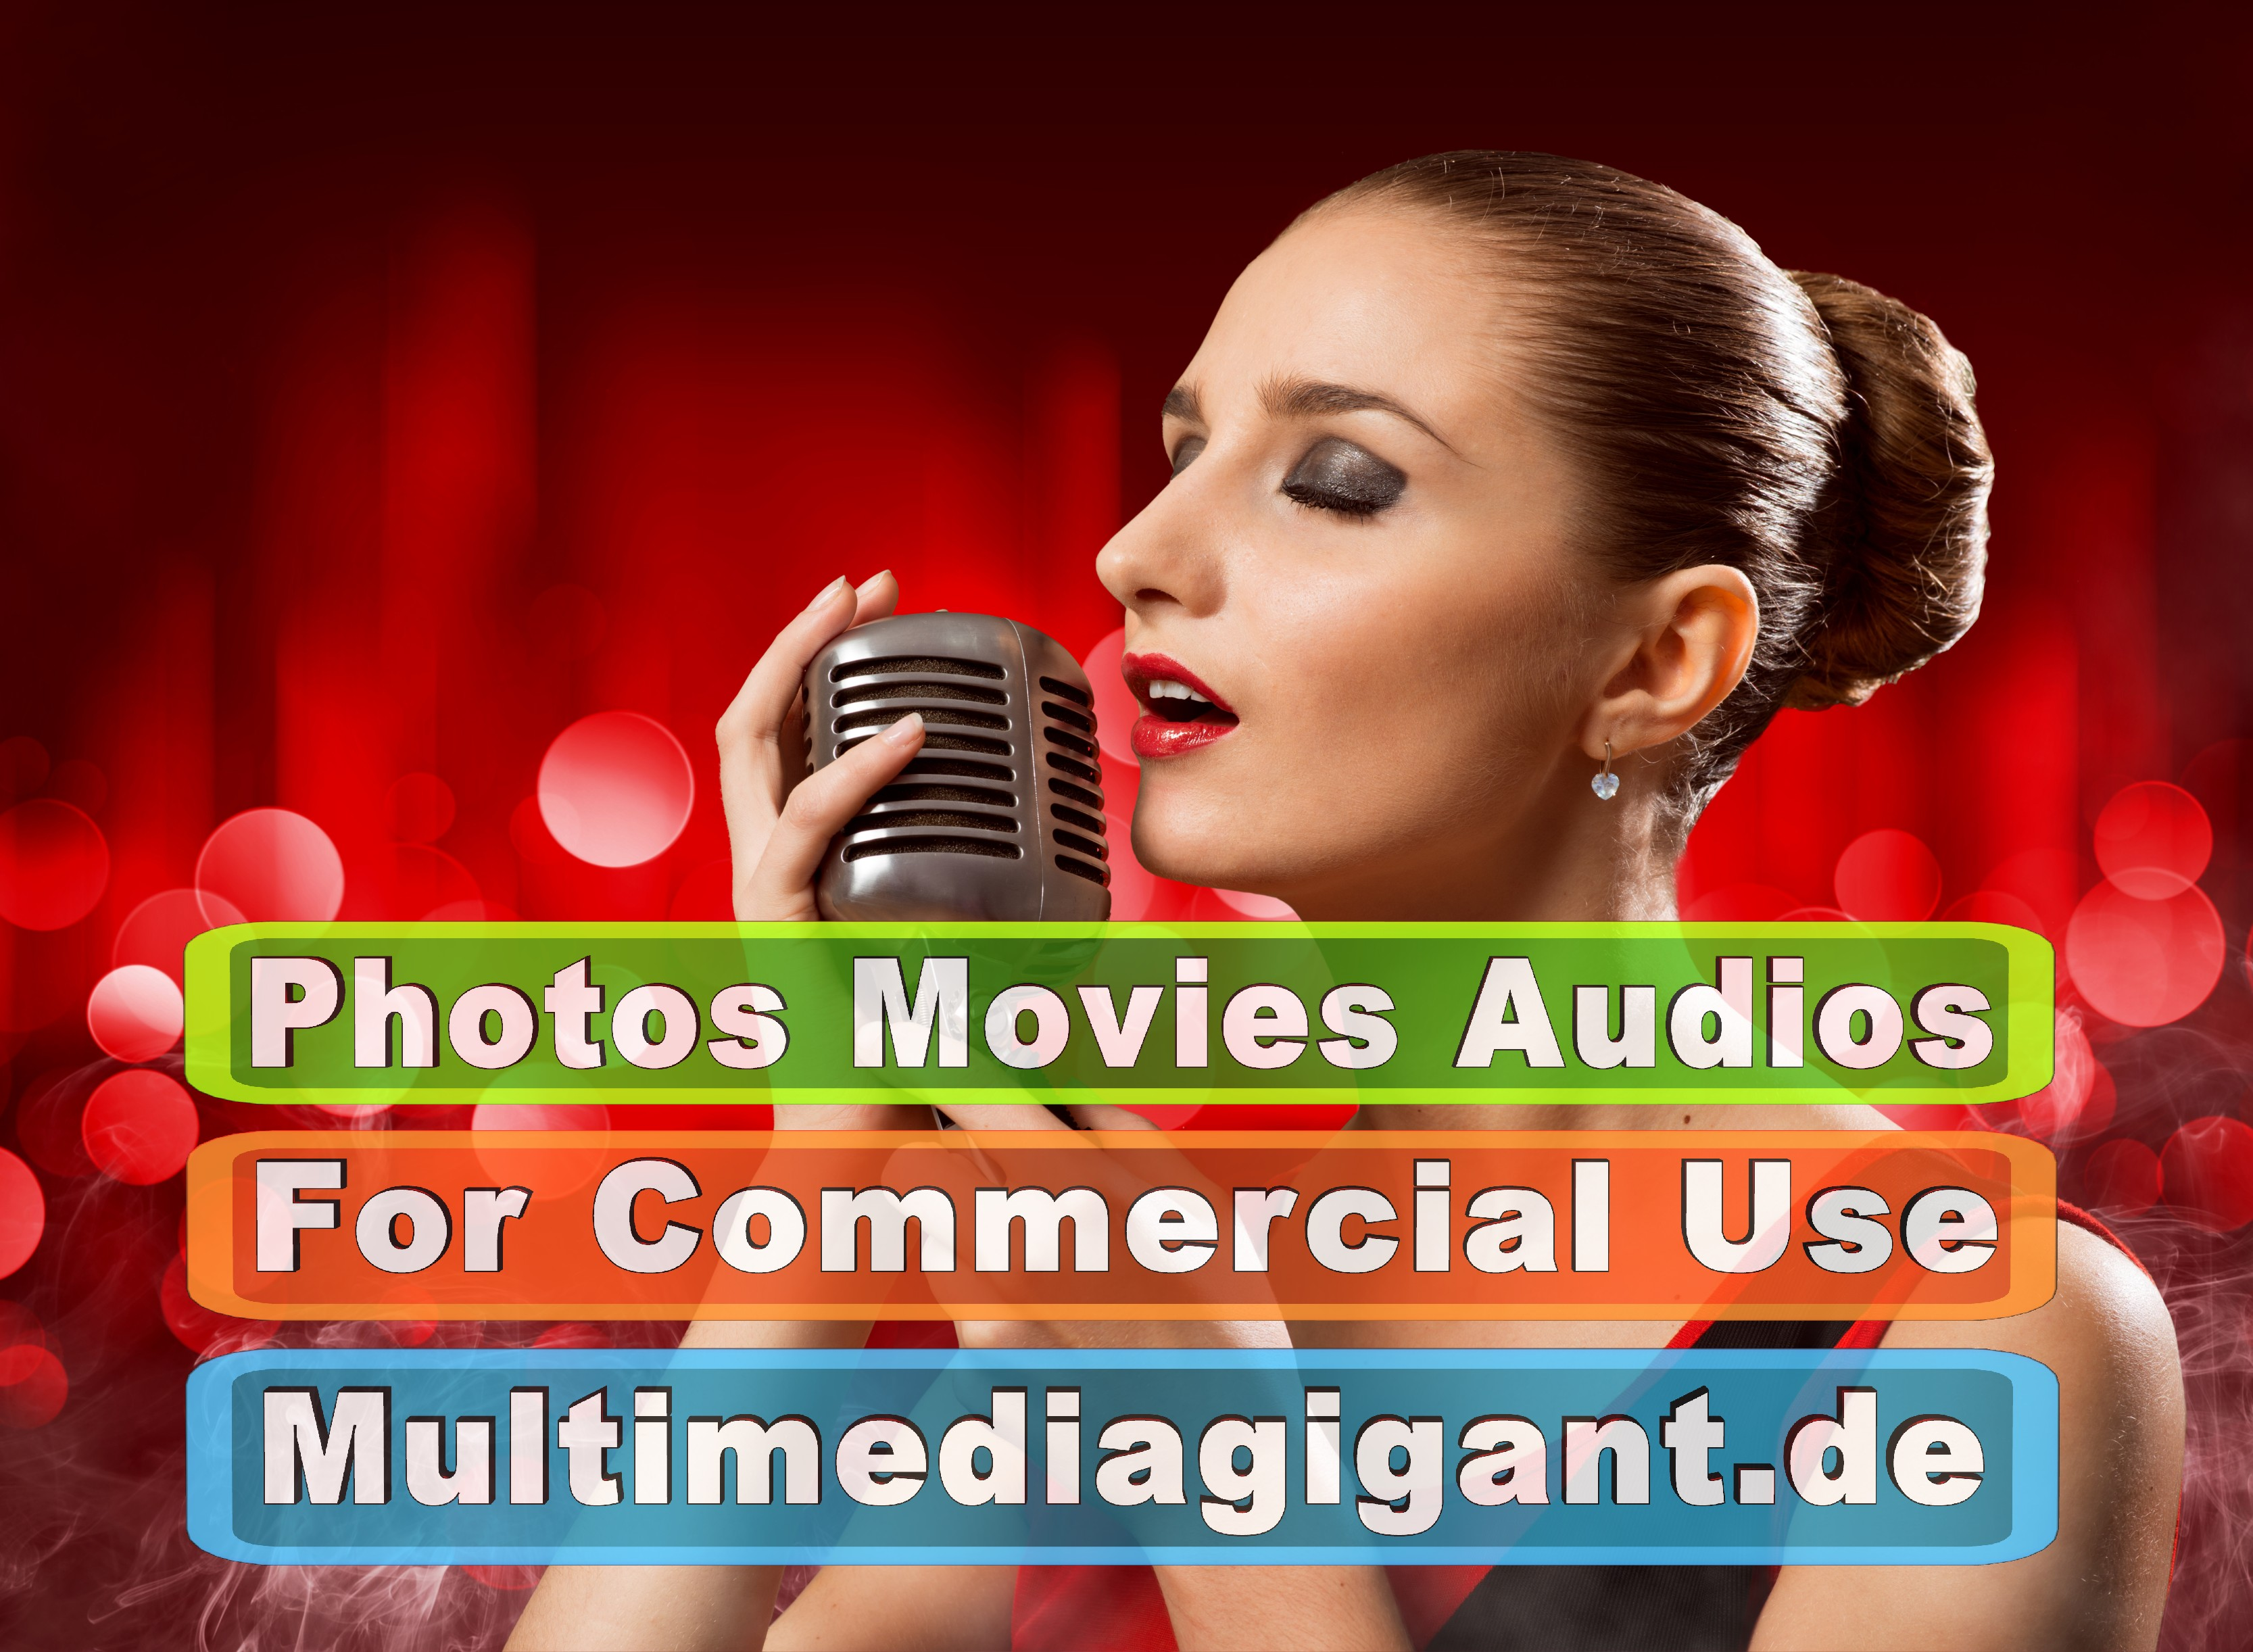 The Best Royalty Free Images